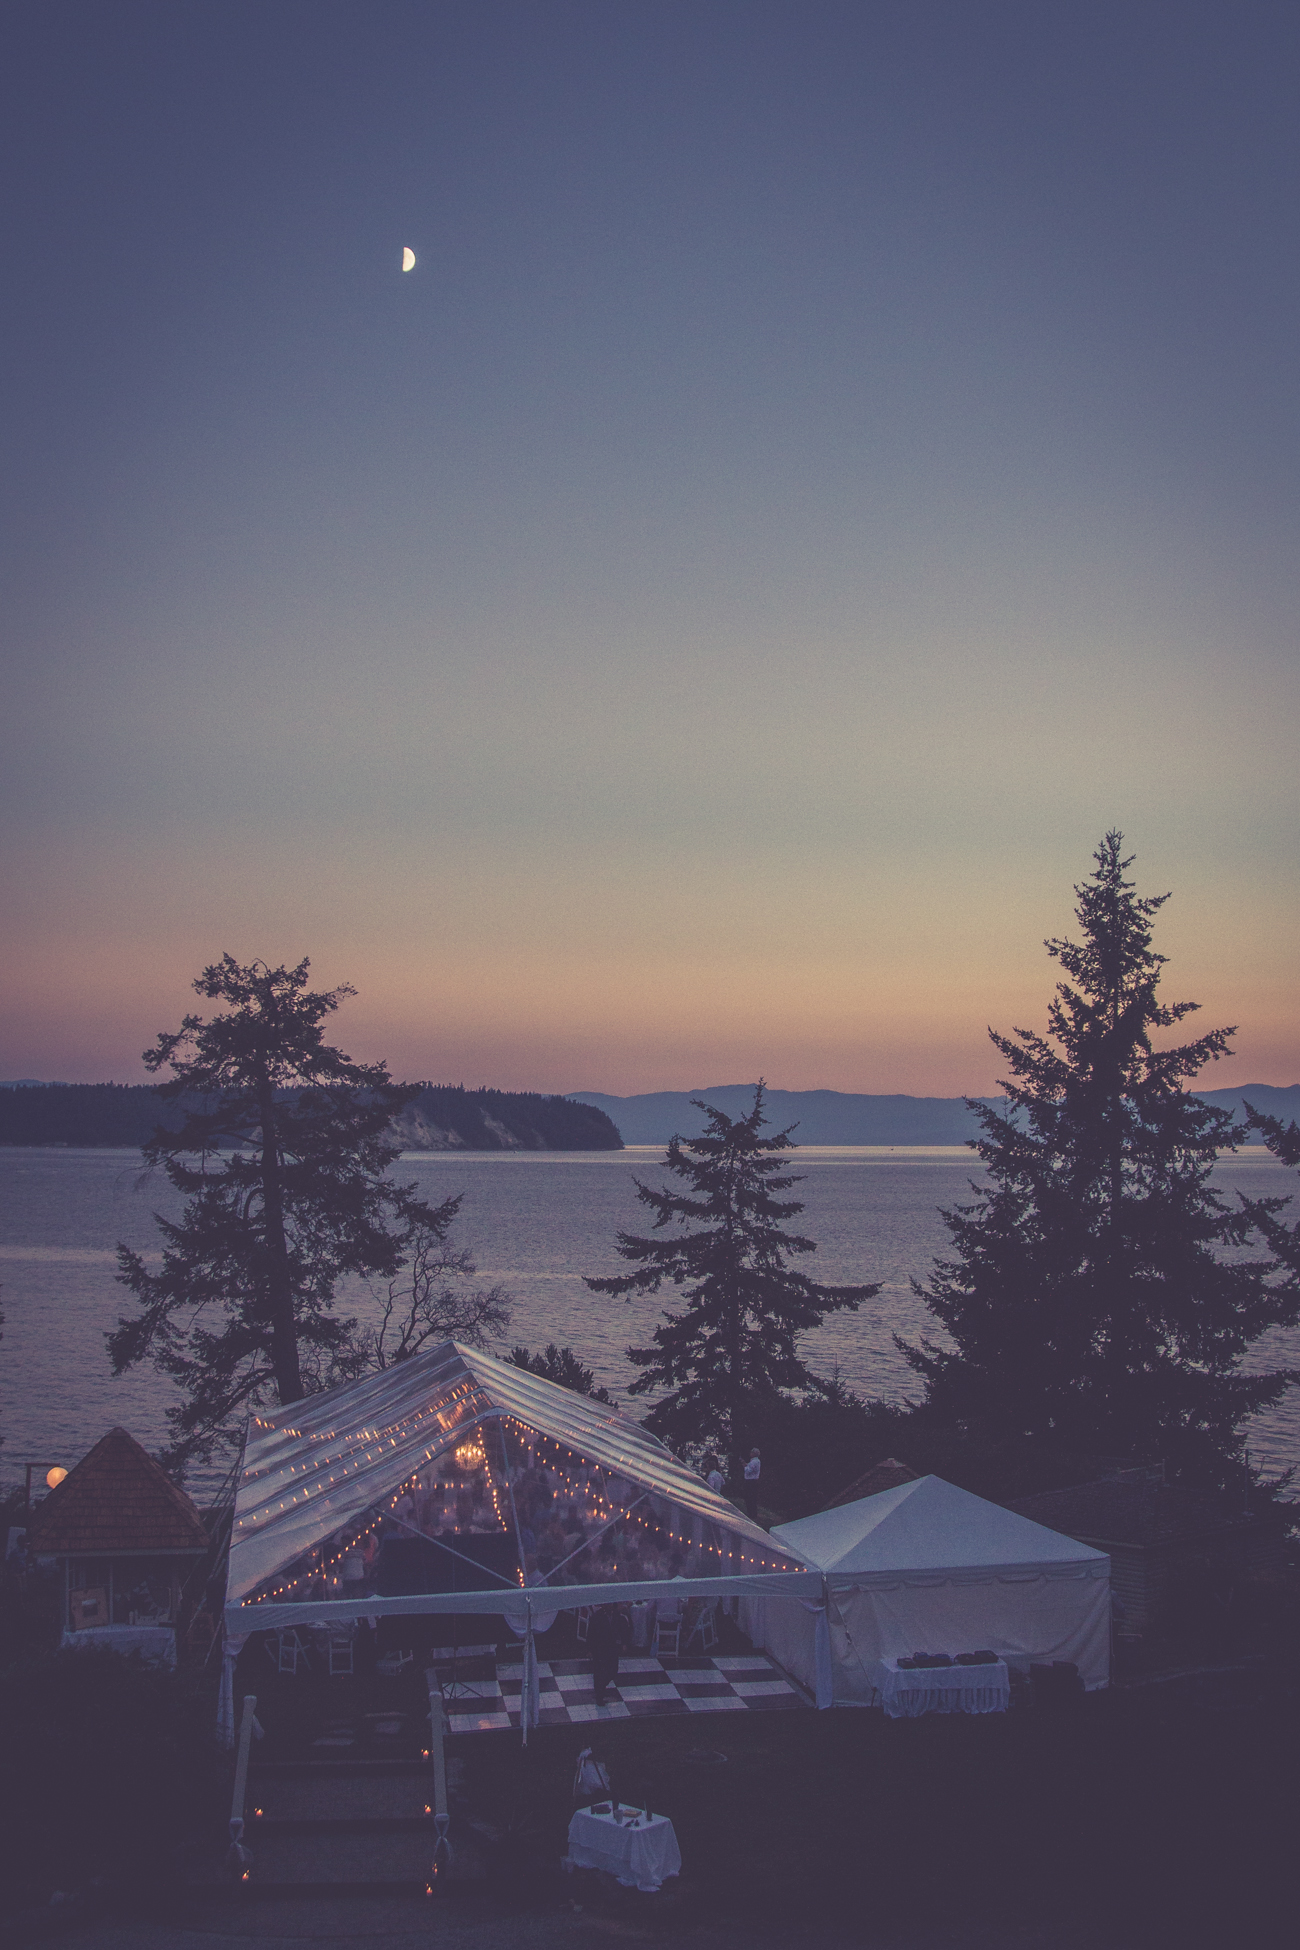 Tent reception overview with fairy lights at Rockwater Secret cove elopement and wedding spot Tofino